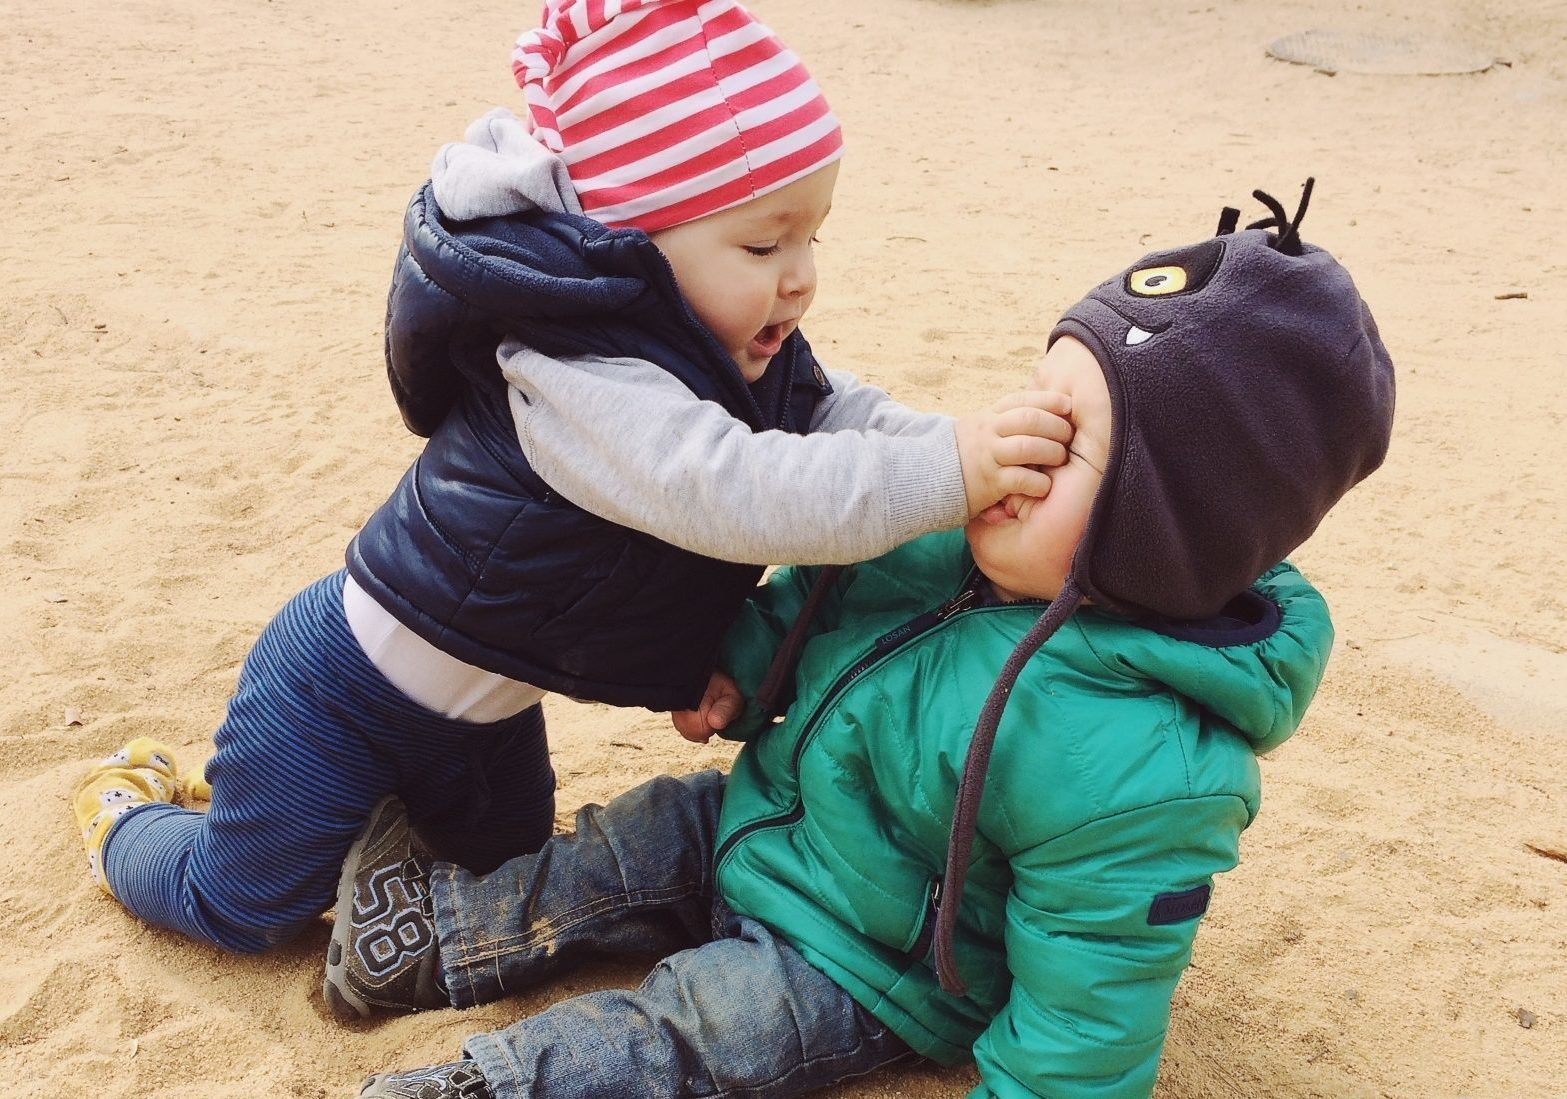 Two kids fighting